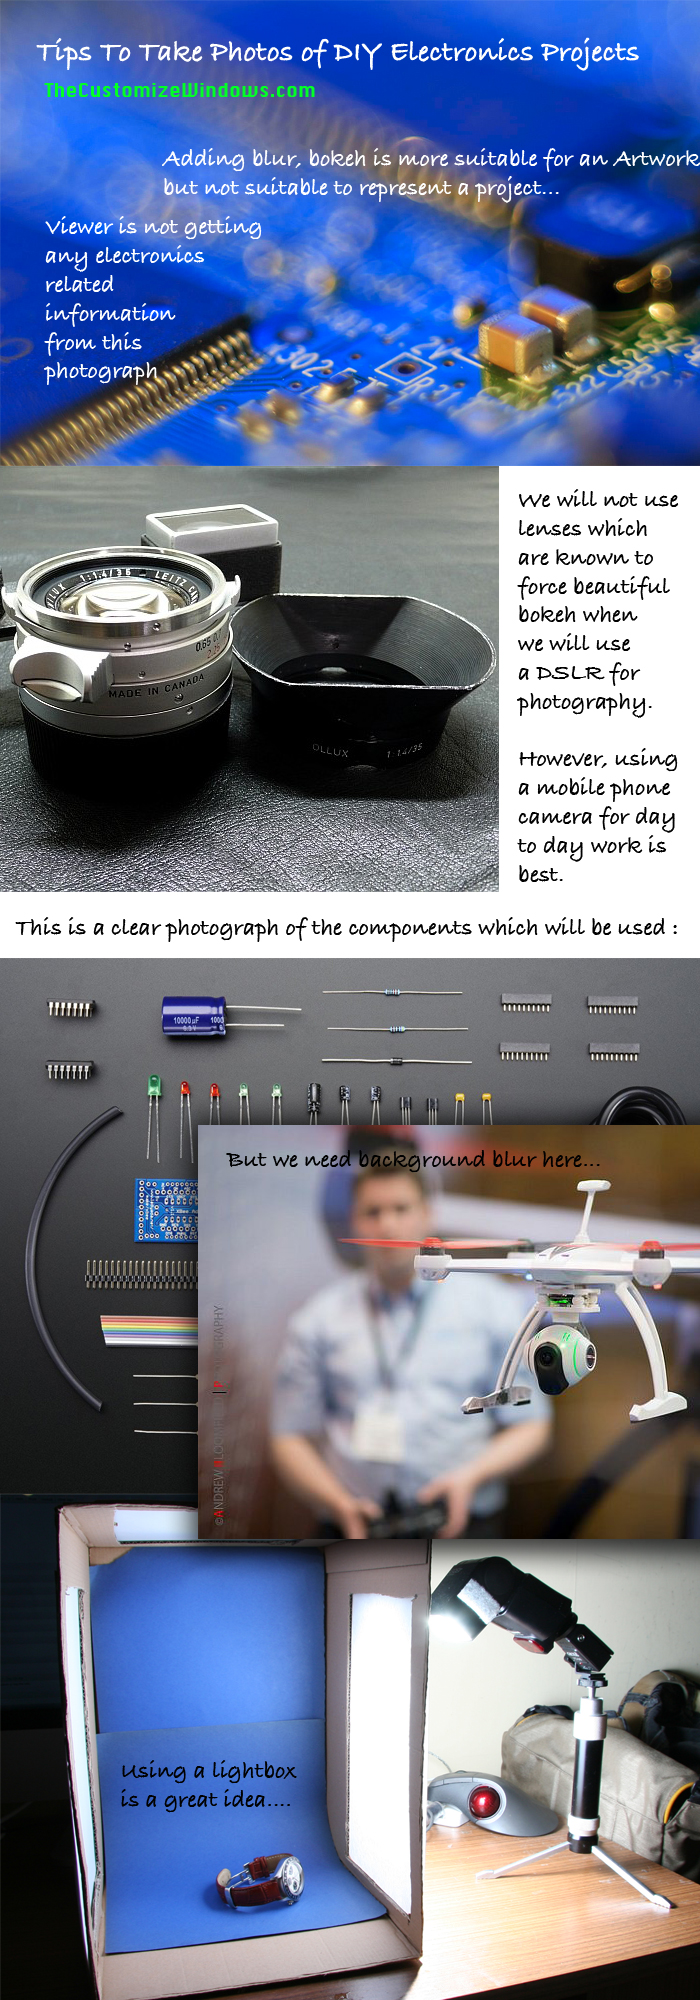 Tips-To-Take-Photos-of-DIY-Electronics-Projects